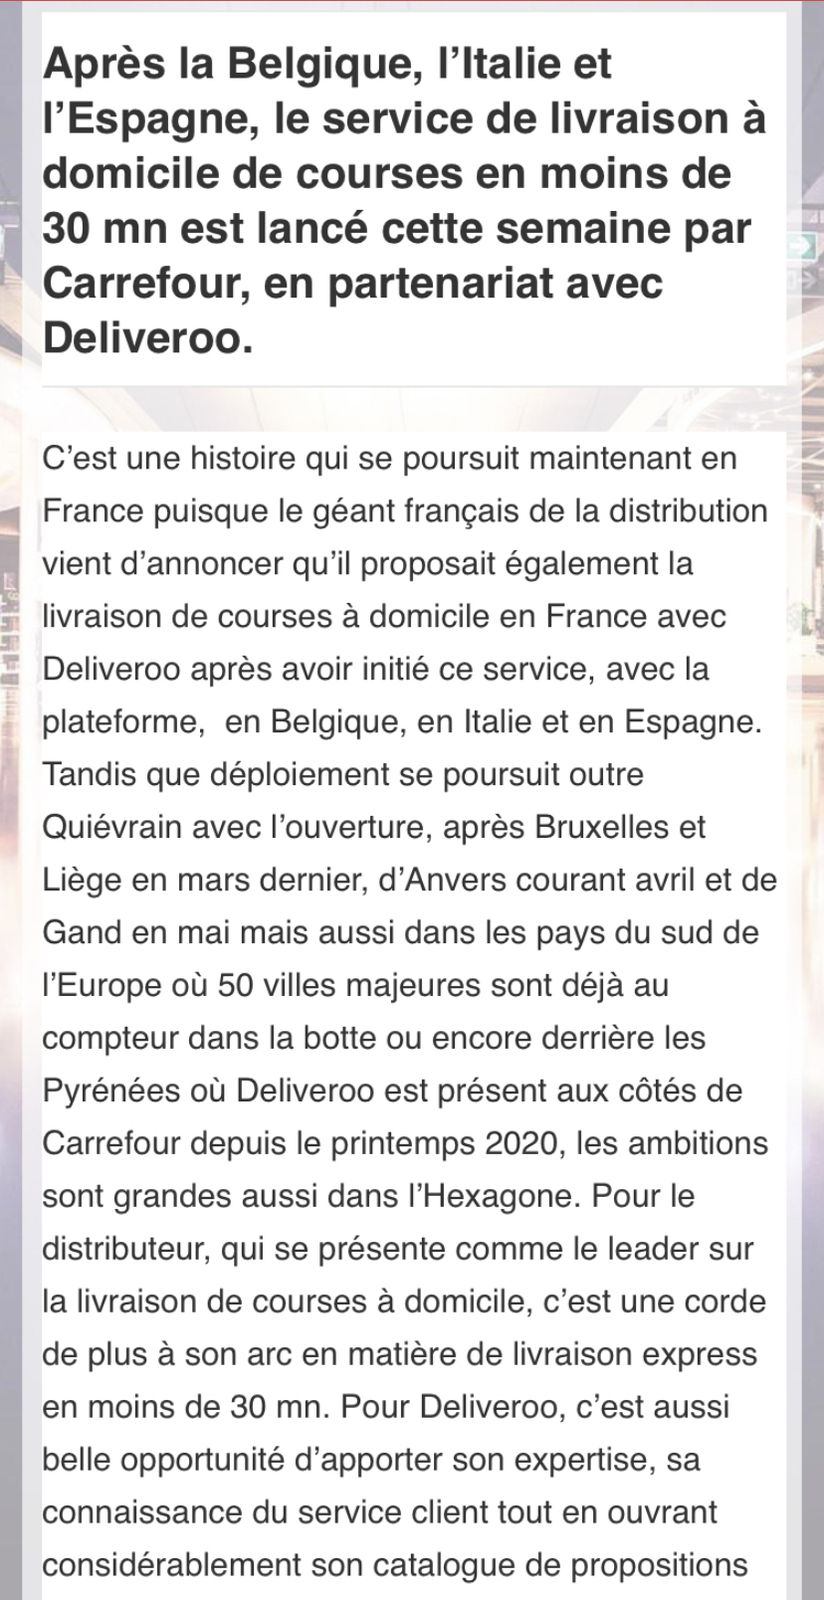 Deliveroo et Carrefour, main dans la main en France et à l'international